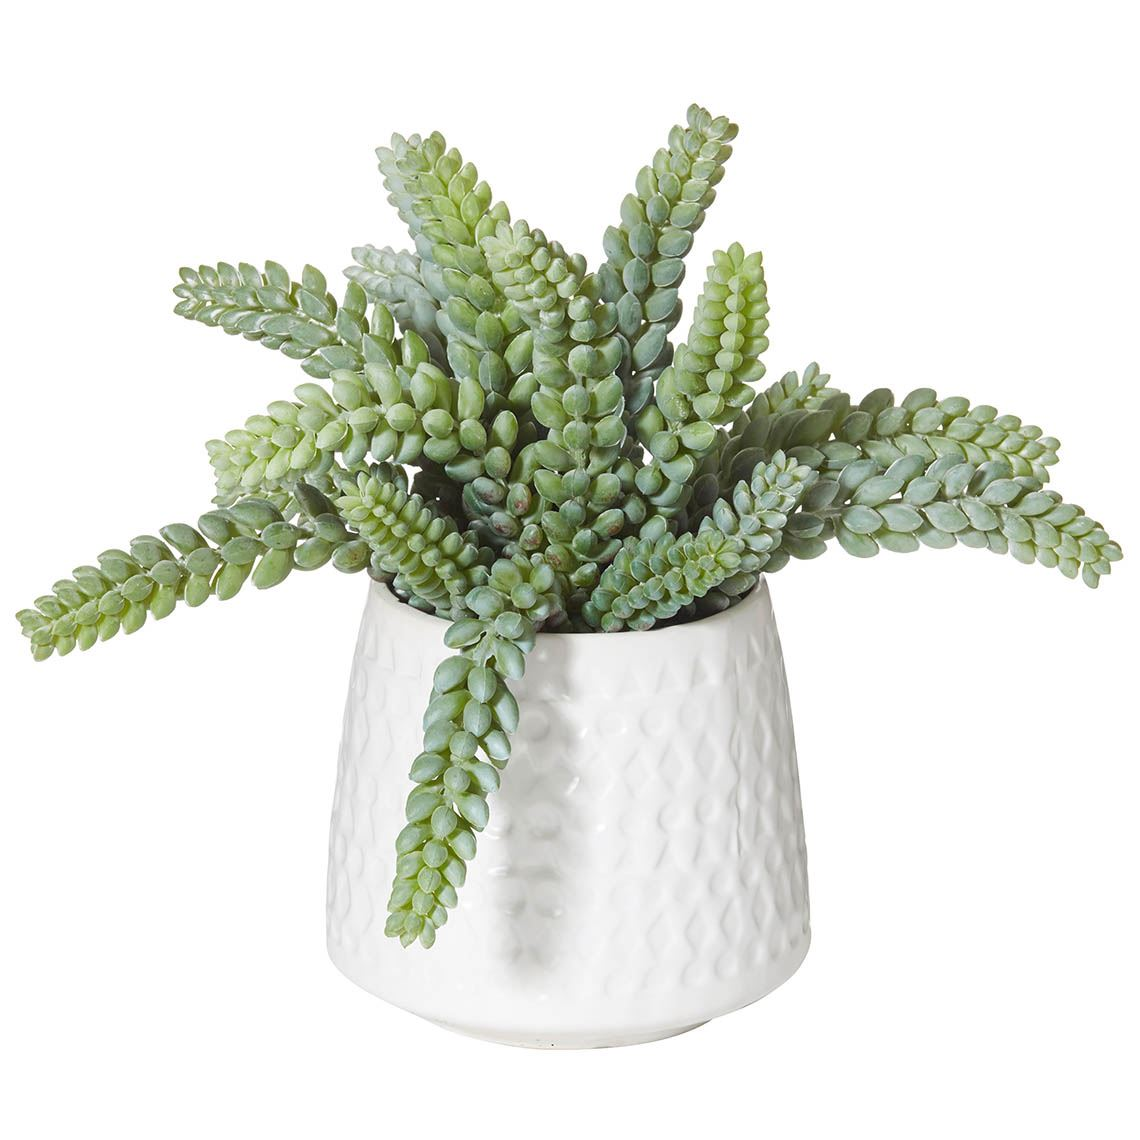 Sandflower Zolin In Pot Size W 32cm x D 32cm x H 28cm Plastic/Wire Freedom by Freedom, a Plants for sale on Style Sourcebook